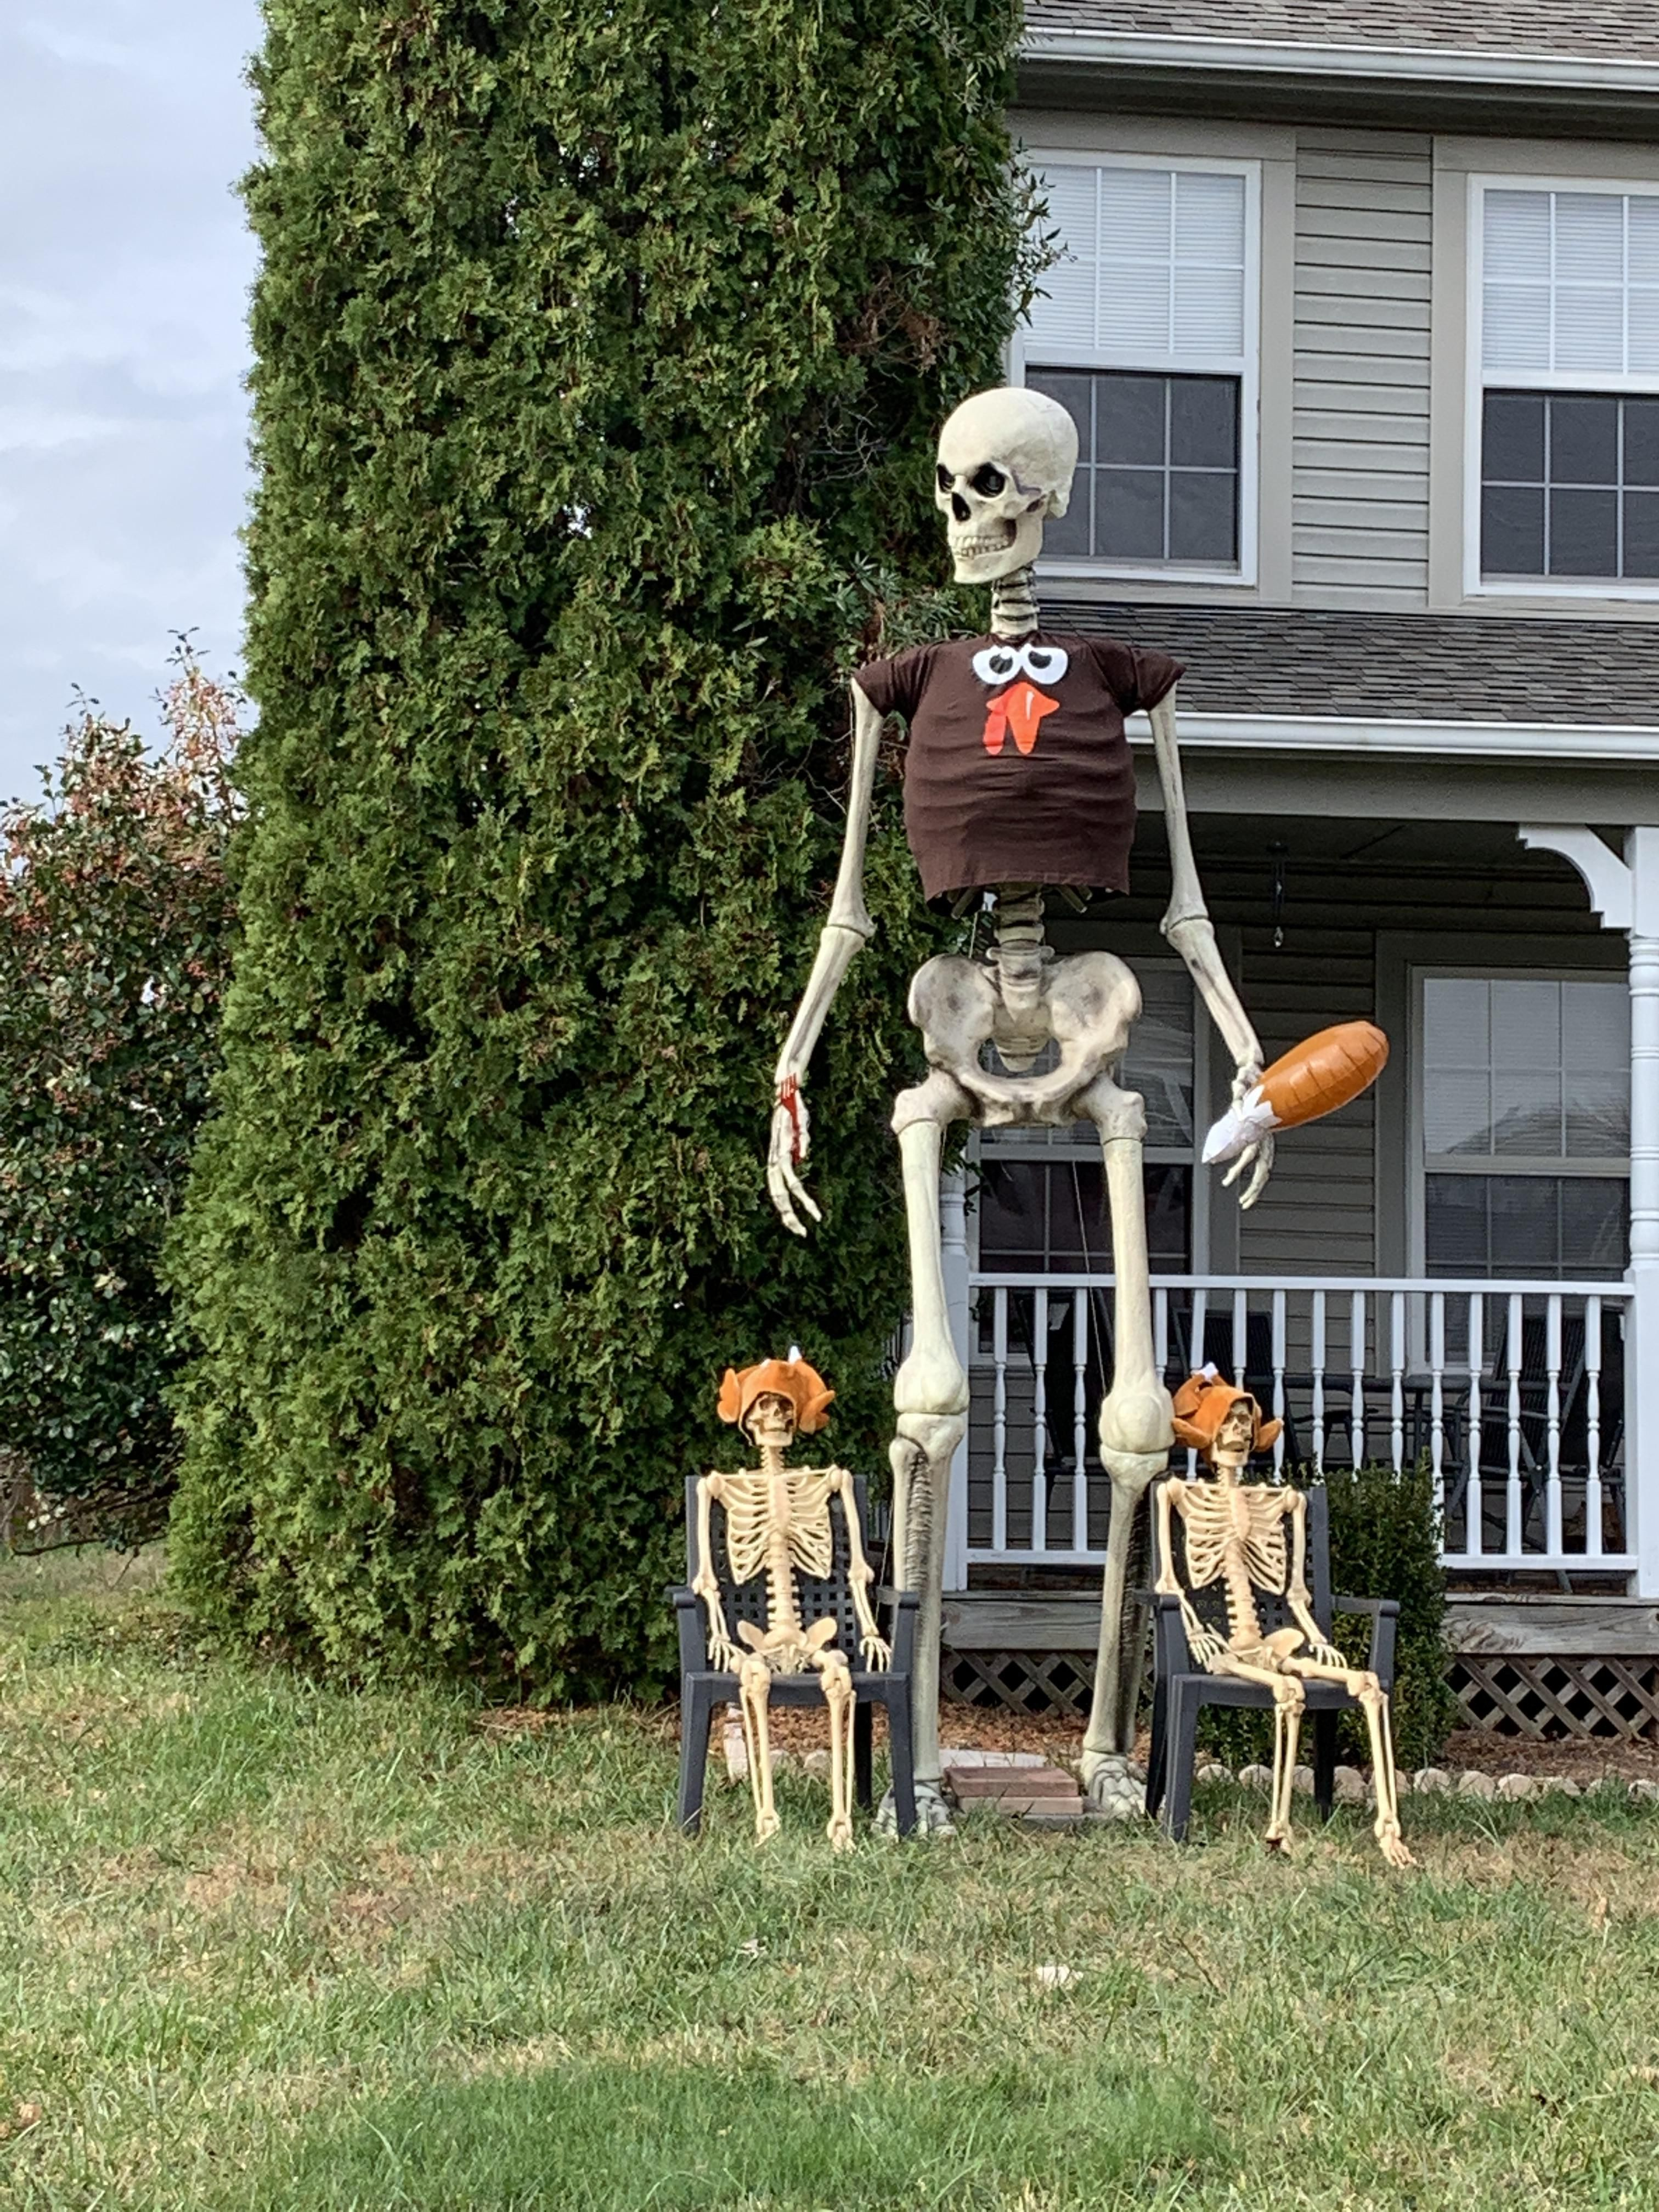 My neighbors getting their money's worth on their giant skeleton